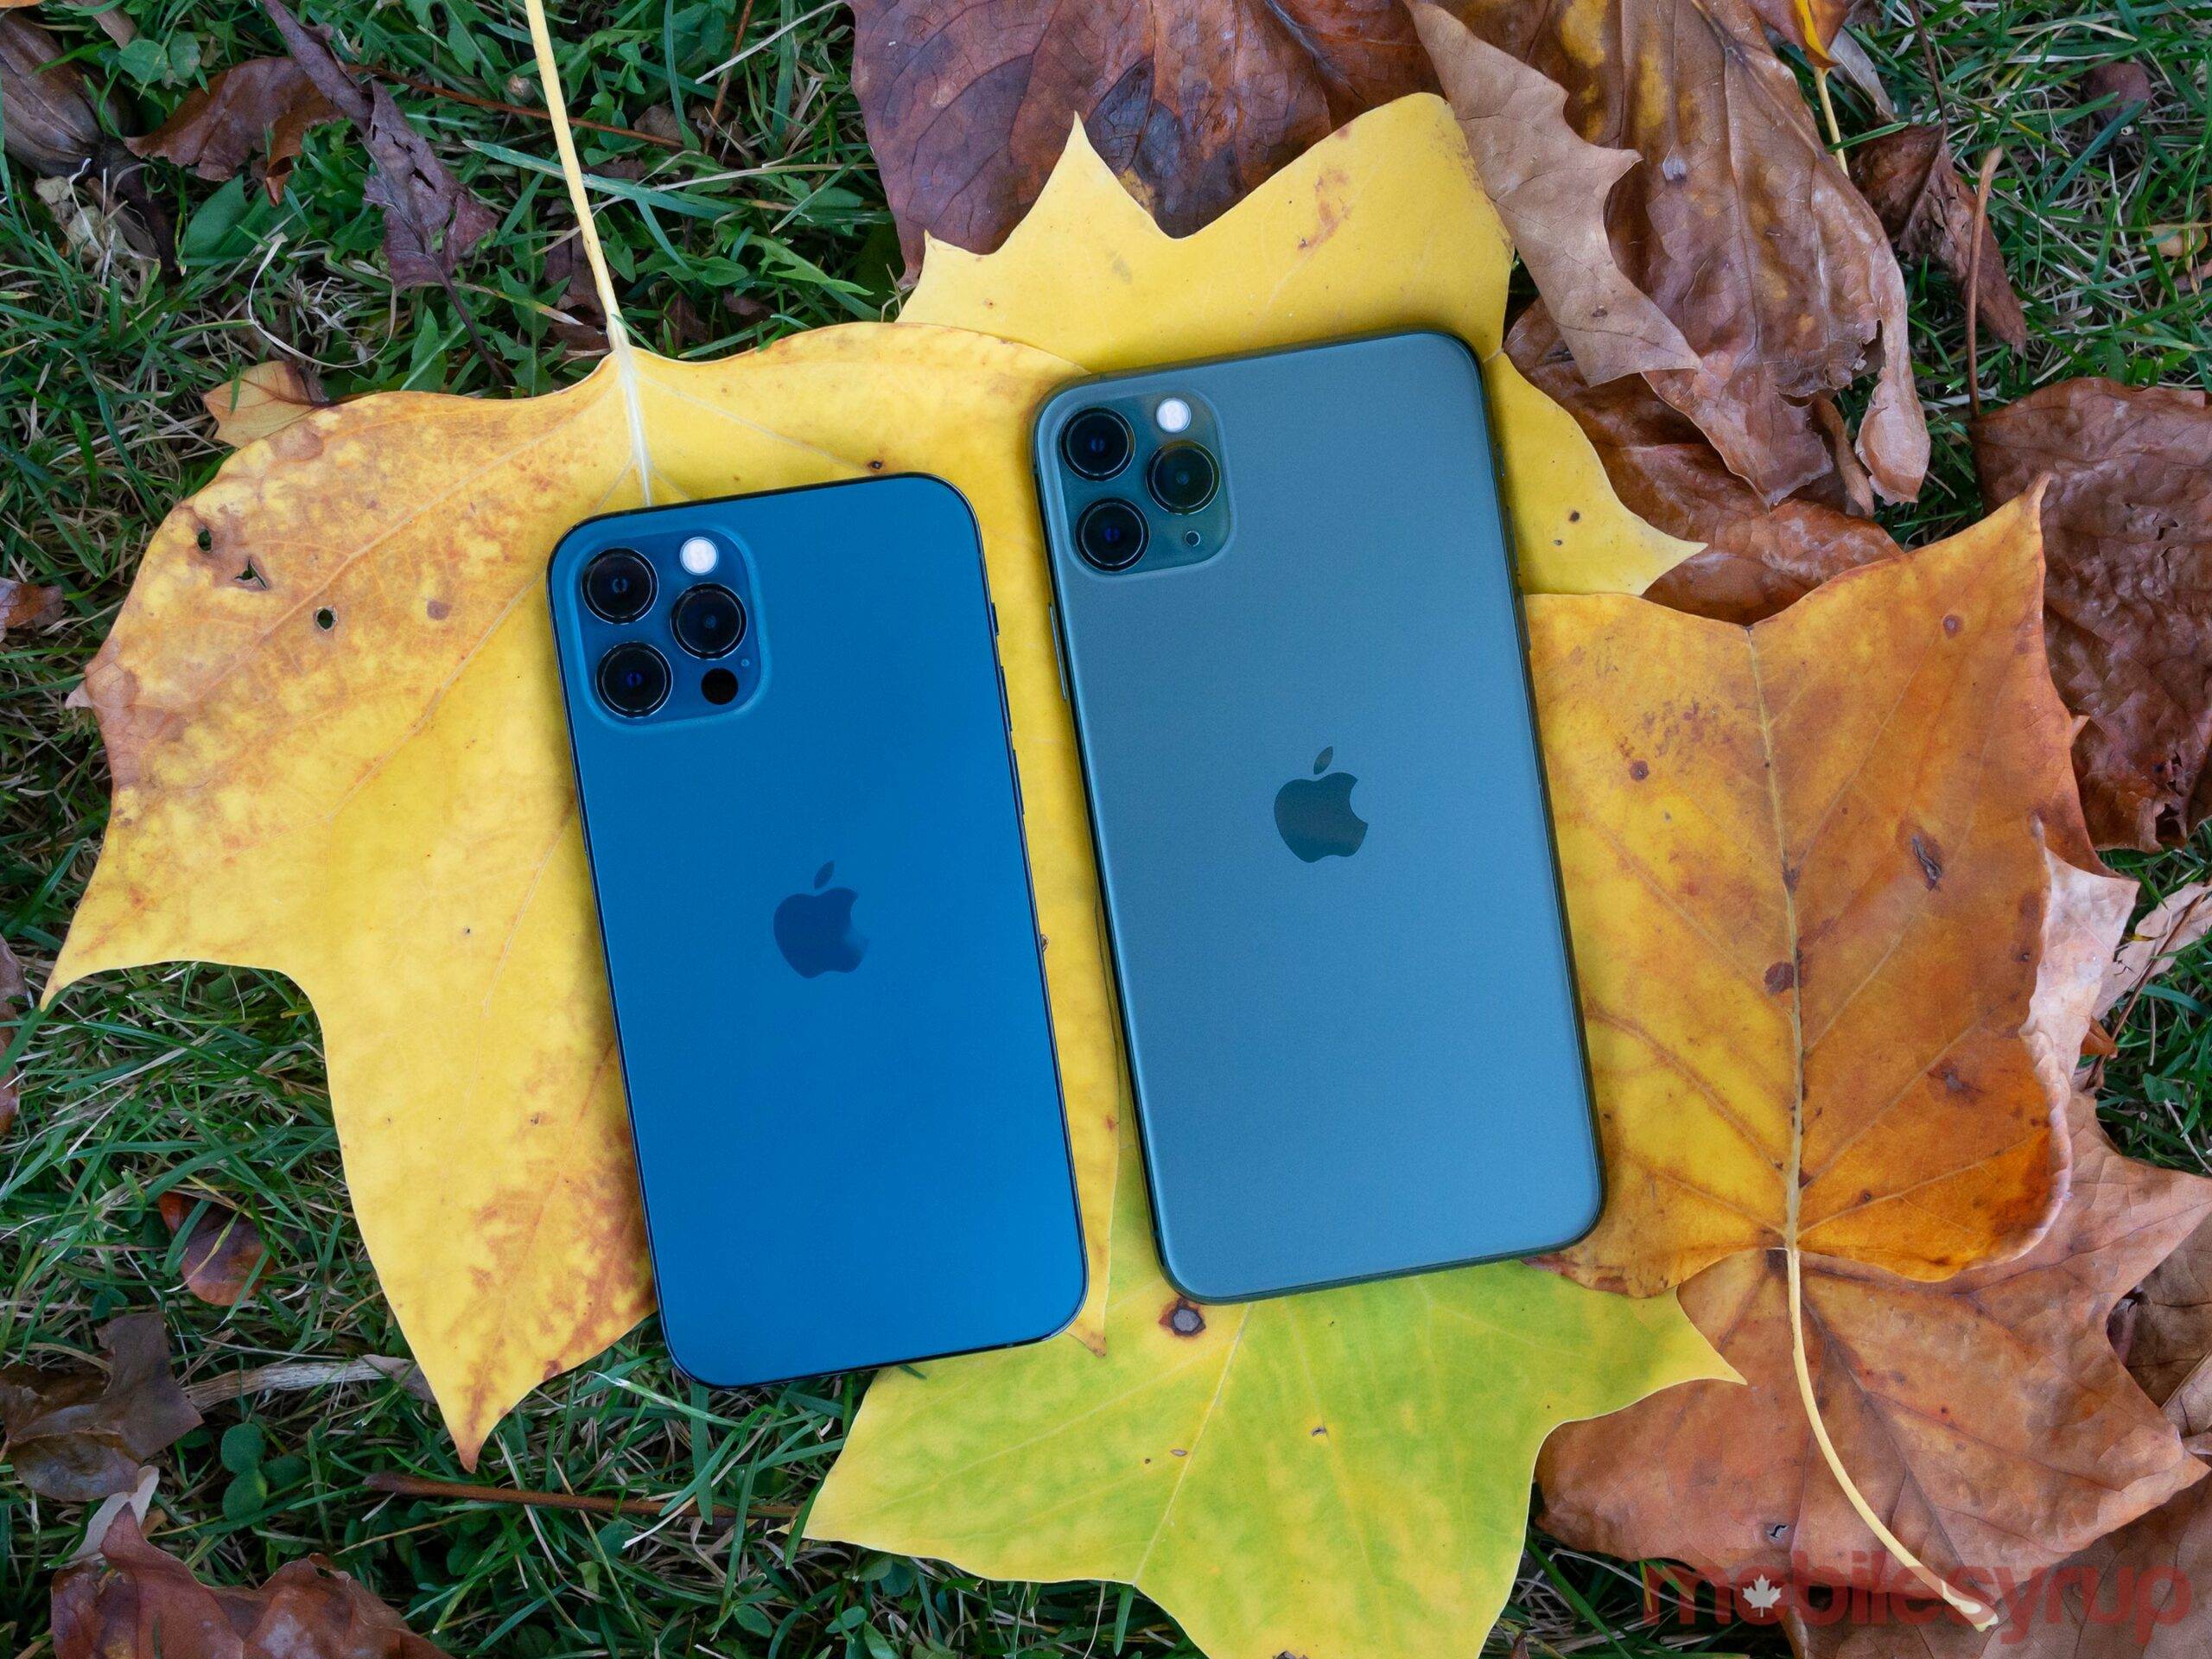 iPhone 12 Pro and iPhone 11 Pro Max